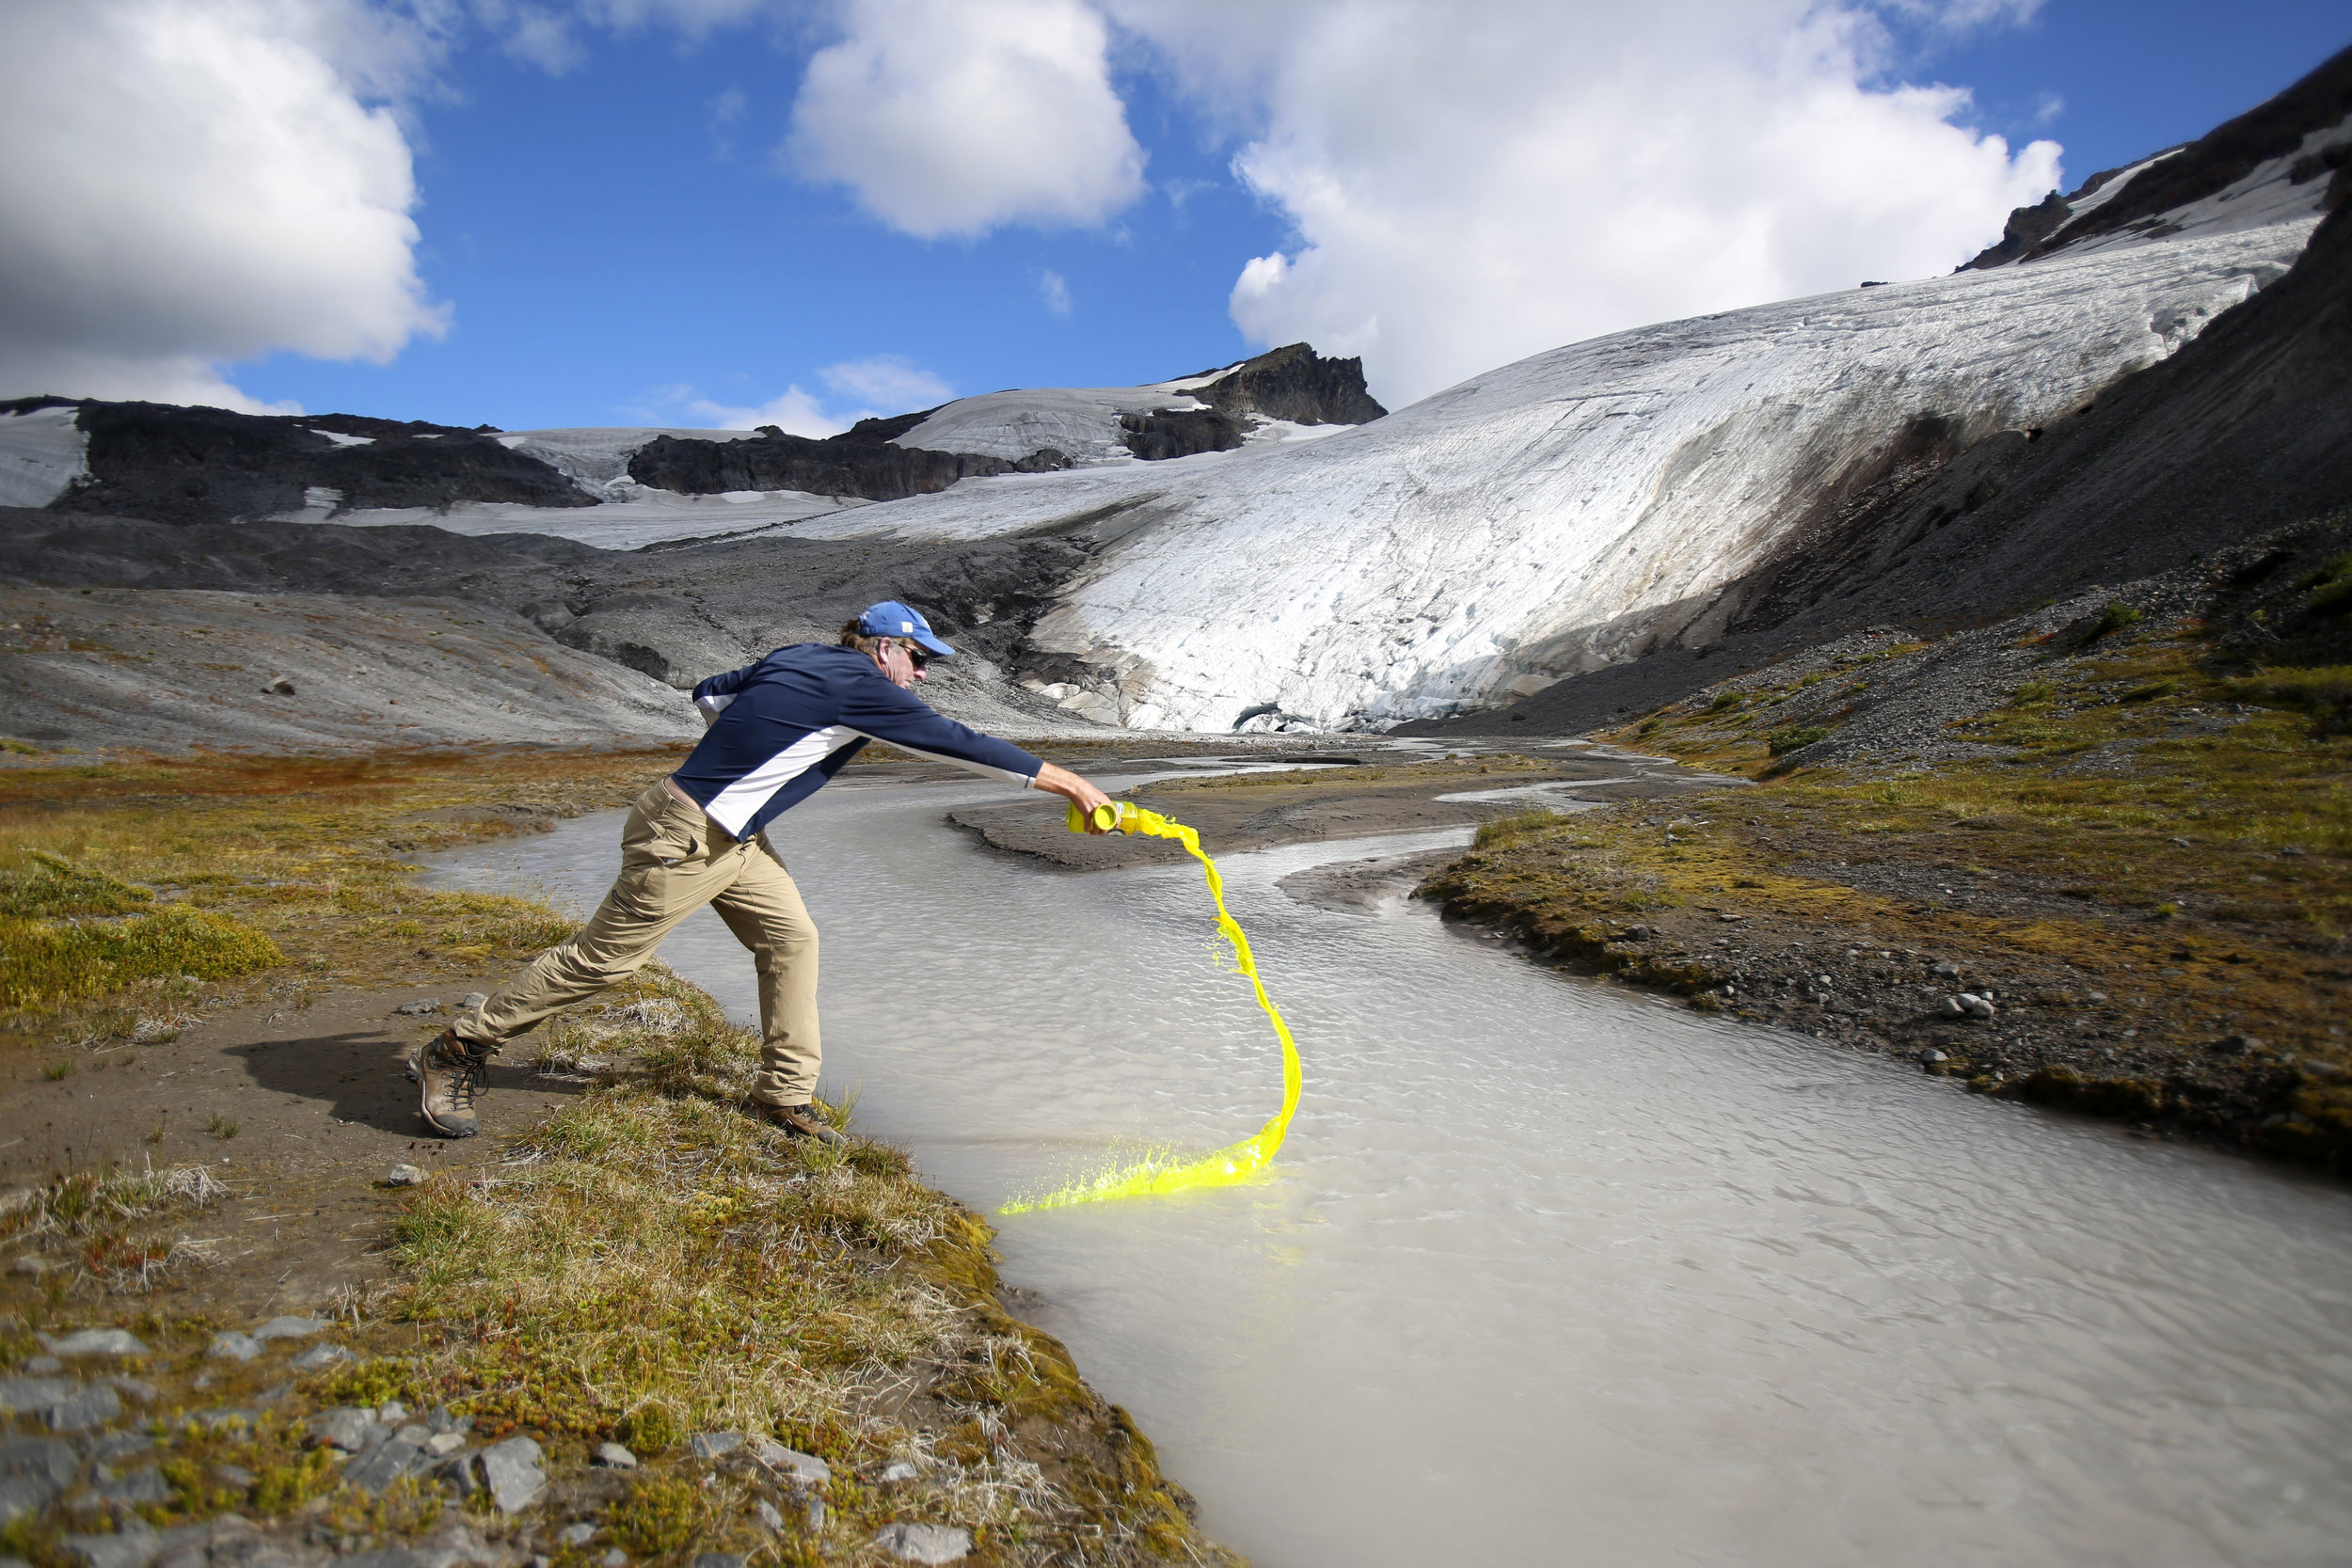 Glaciologist Mauri Pelto pours biodegradable dye into a runoff stream Friday, Aug. 7, 2015, in order to measure the volume of runoff on Sholes Glacier, on the northeast slope of Mount Baker. The glacier has receded more than 90 meters, or nearly 300 feet, Pelto said.